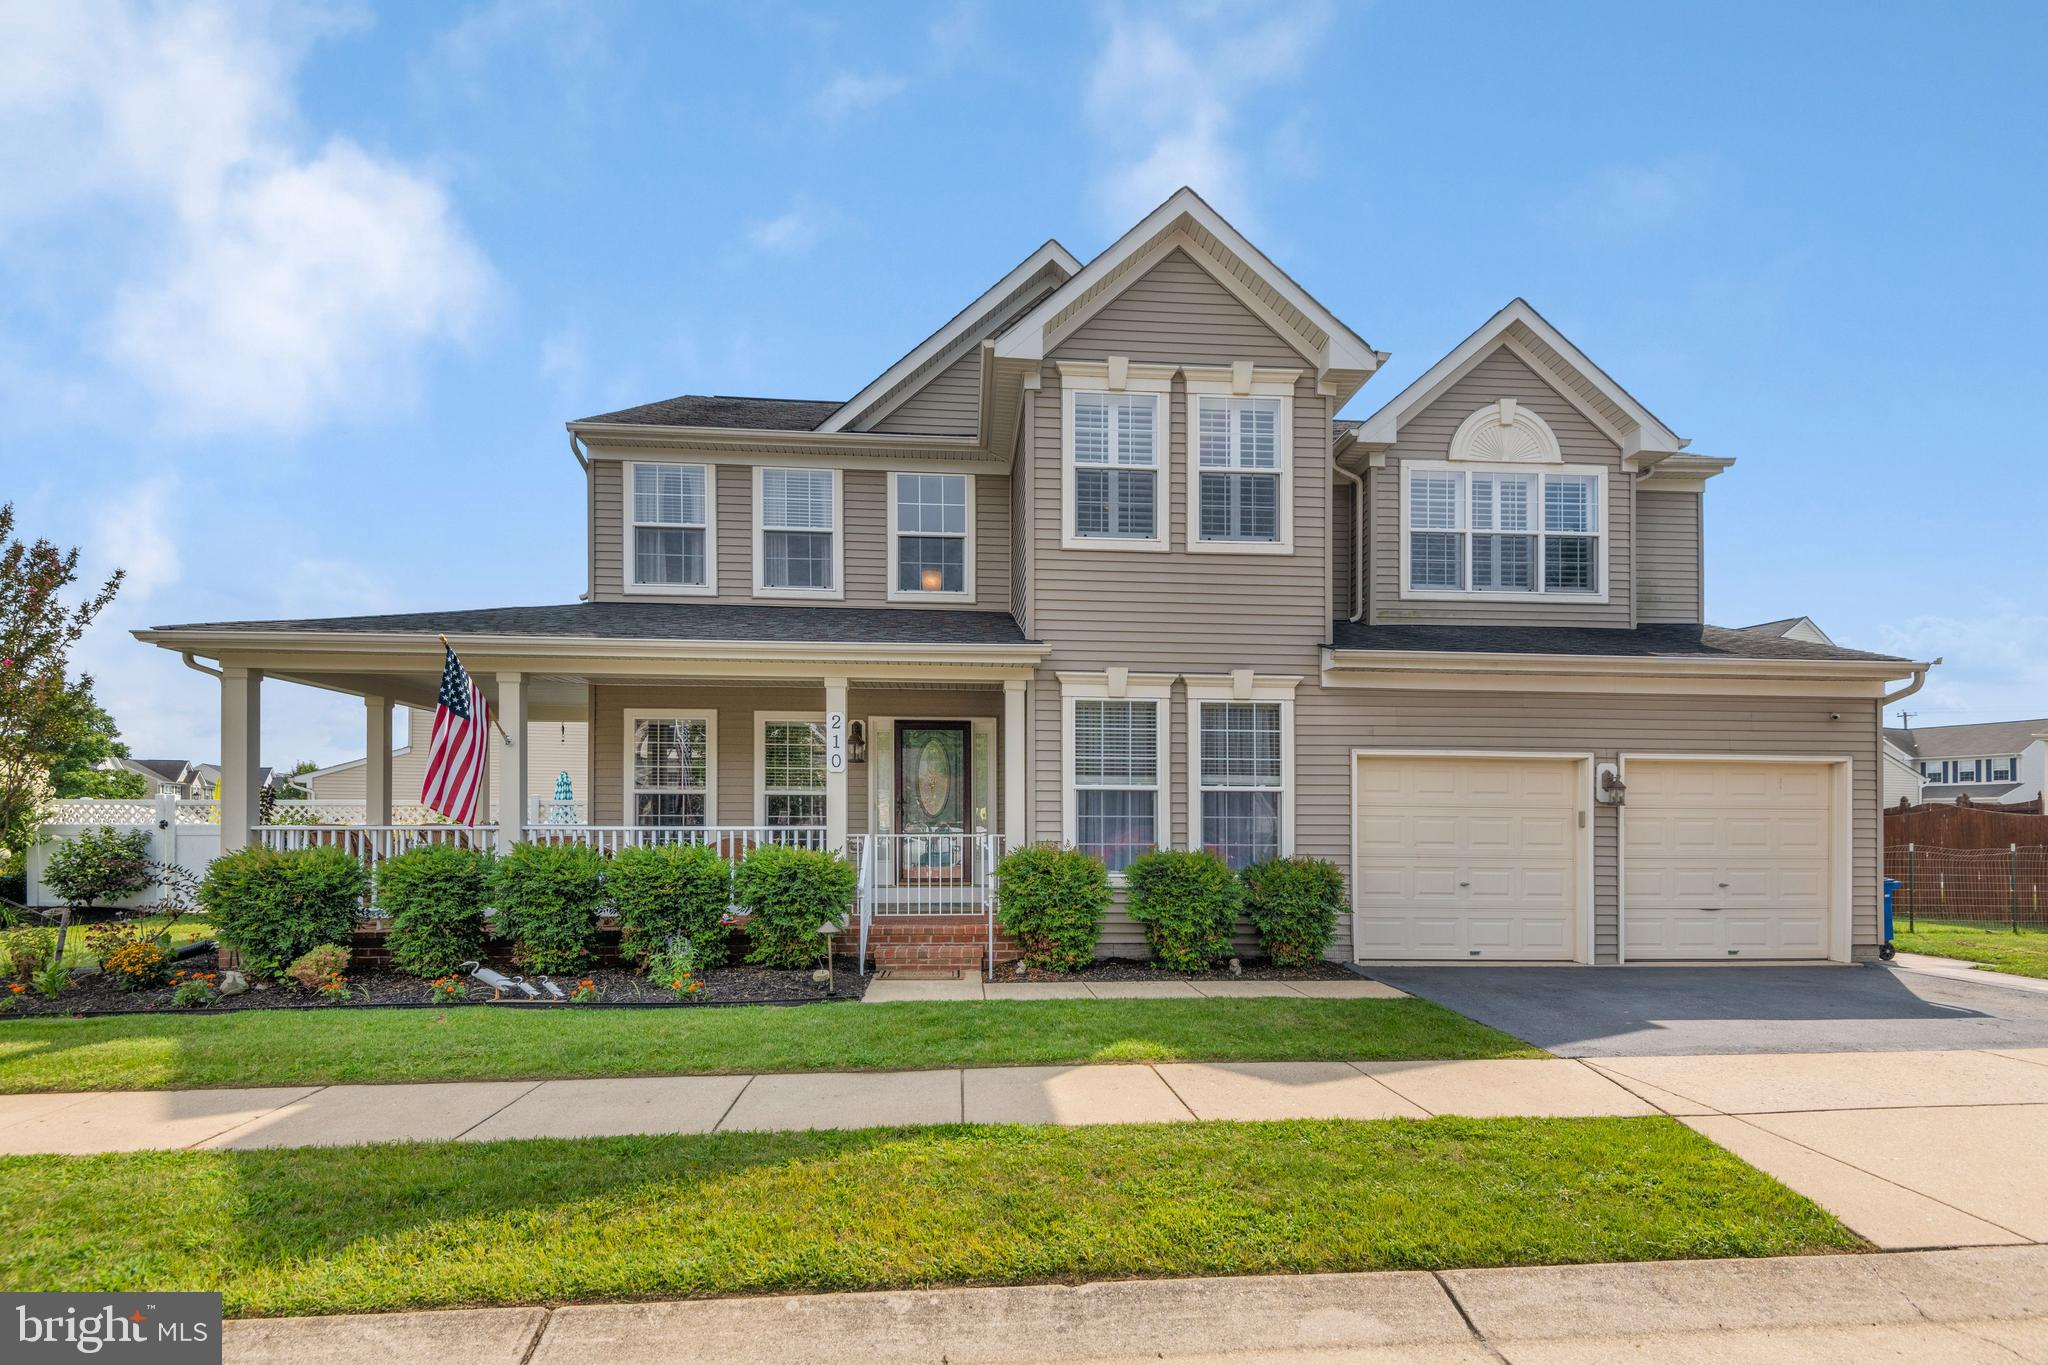 Now is your chance to own in the sought-after community of North Brook, in the beautiful historic town of Centerville! Your new home is located on a corner lot and features a wide wrap-around brick front porch and backyard oasis with an IN-GROUND POOL. Built in 2006, this Princeton model offers spacious bump-outs: Dining Room, Family Room, Kitchen, Primary Bedroom with a Sitting Room. Create a Bedroom, Home Office, or In-Law/ Au Pair Suite on the first floor. Gather around the gas-burning fireplace in the Living Room on cool evenings to watch a movie or host a game night. Create meals and memories in the gourmet Kitchen, which overlooks the beautiful rear yard and patio. Completely the main level is the spacious Dining Room, Full Bath, and Laundry Room with utility sink. Atop the home is nestled the 4 Bedrooms ( all with their own walk-in closets) and 2 Full Baths. The Primary Bedroom features a sitting area that could be used as a home office, large closet, work out space, the possibilities are endless. The adjoining ensuite has an oversized tub and custom shutters for privacy. Storage is not an issue in this home, enjoy the 4 foot enclosed space under the stair of the Foyer hallway. Relax by the pool in your private rear yard as you bask in your luscious yard and lovely landscaping that is watered by an irrigation system. Partake in all the North Brook community has to offer such as the soccer field, picnic pavilion, tot-lot, and walking trail. Location is everything, you will be able to enjoy all the Bay has to offer such as fishing, bird watching, or kayaking. Take advantage of easy day trips to the beaches of Maryland, New Jersey, Pennsylvania, and Delaware. Book your appointment today!